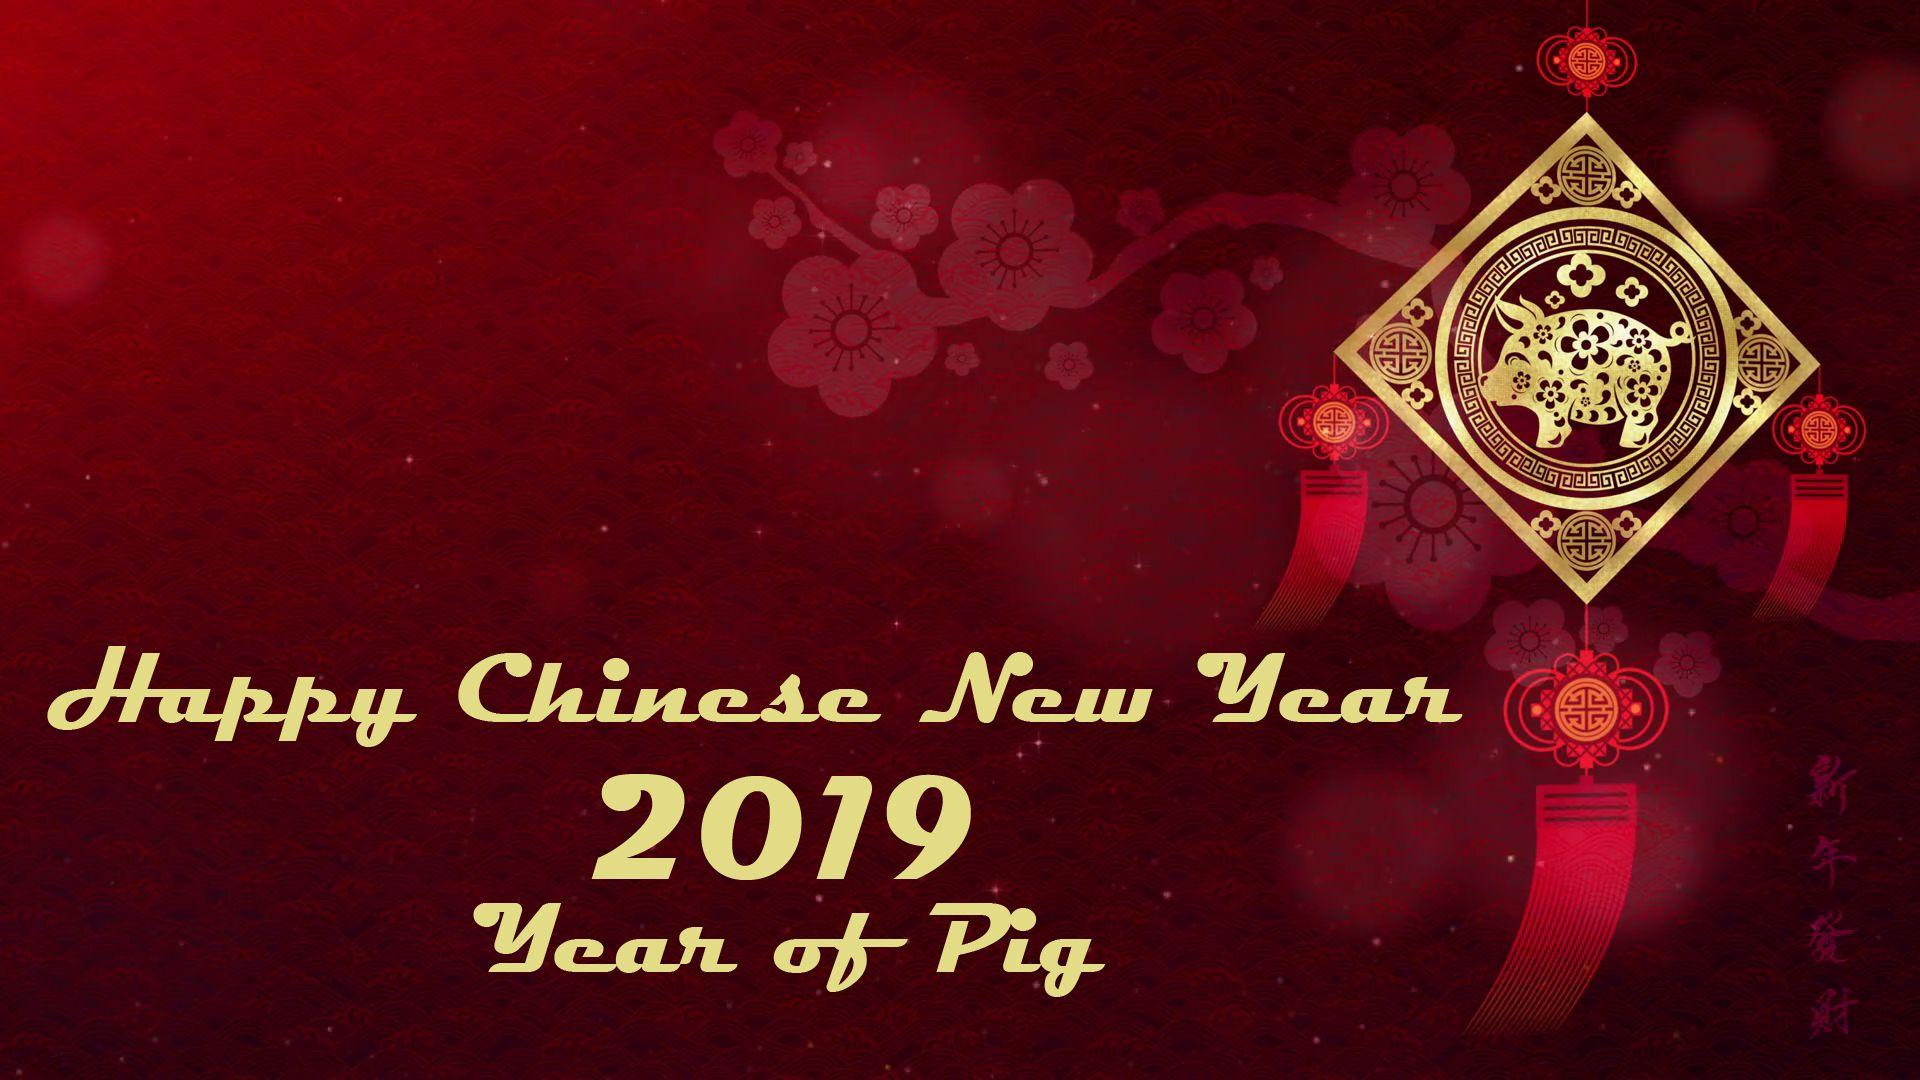 Chinese New Year 2019 Wallpapers – Year of the Pig